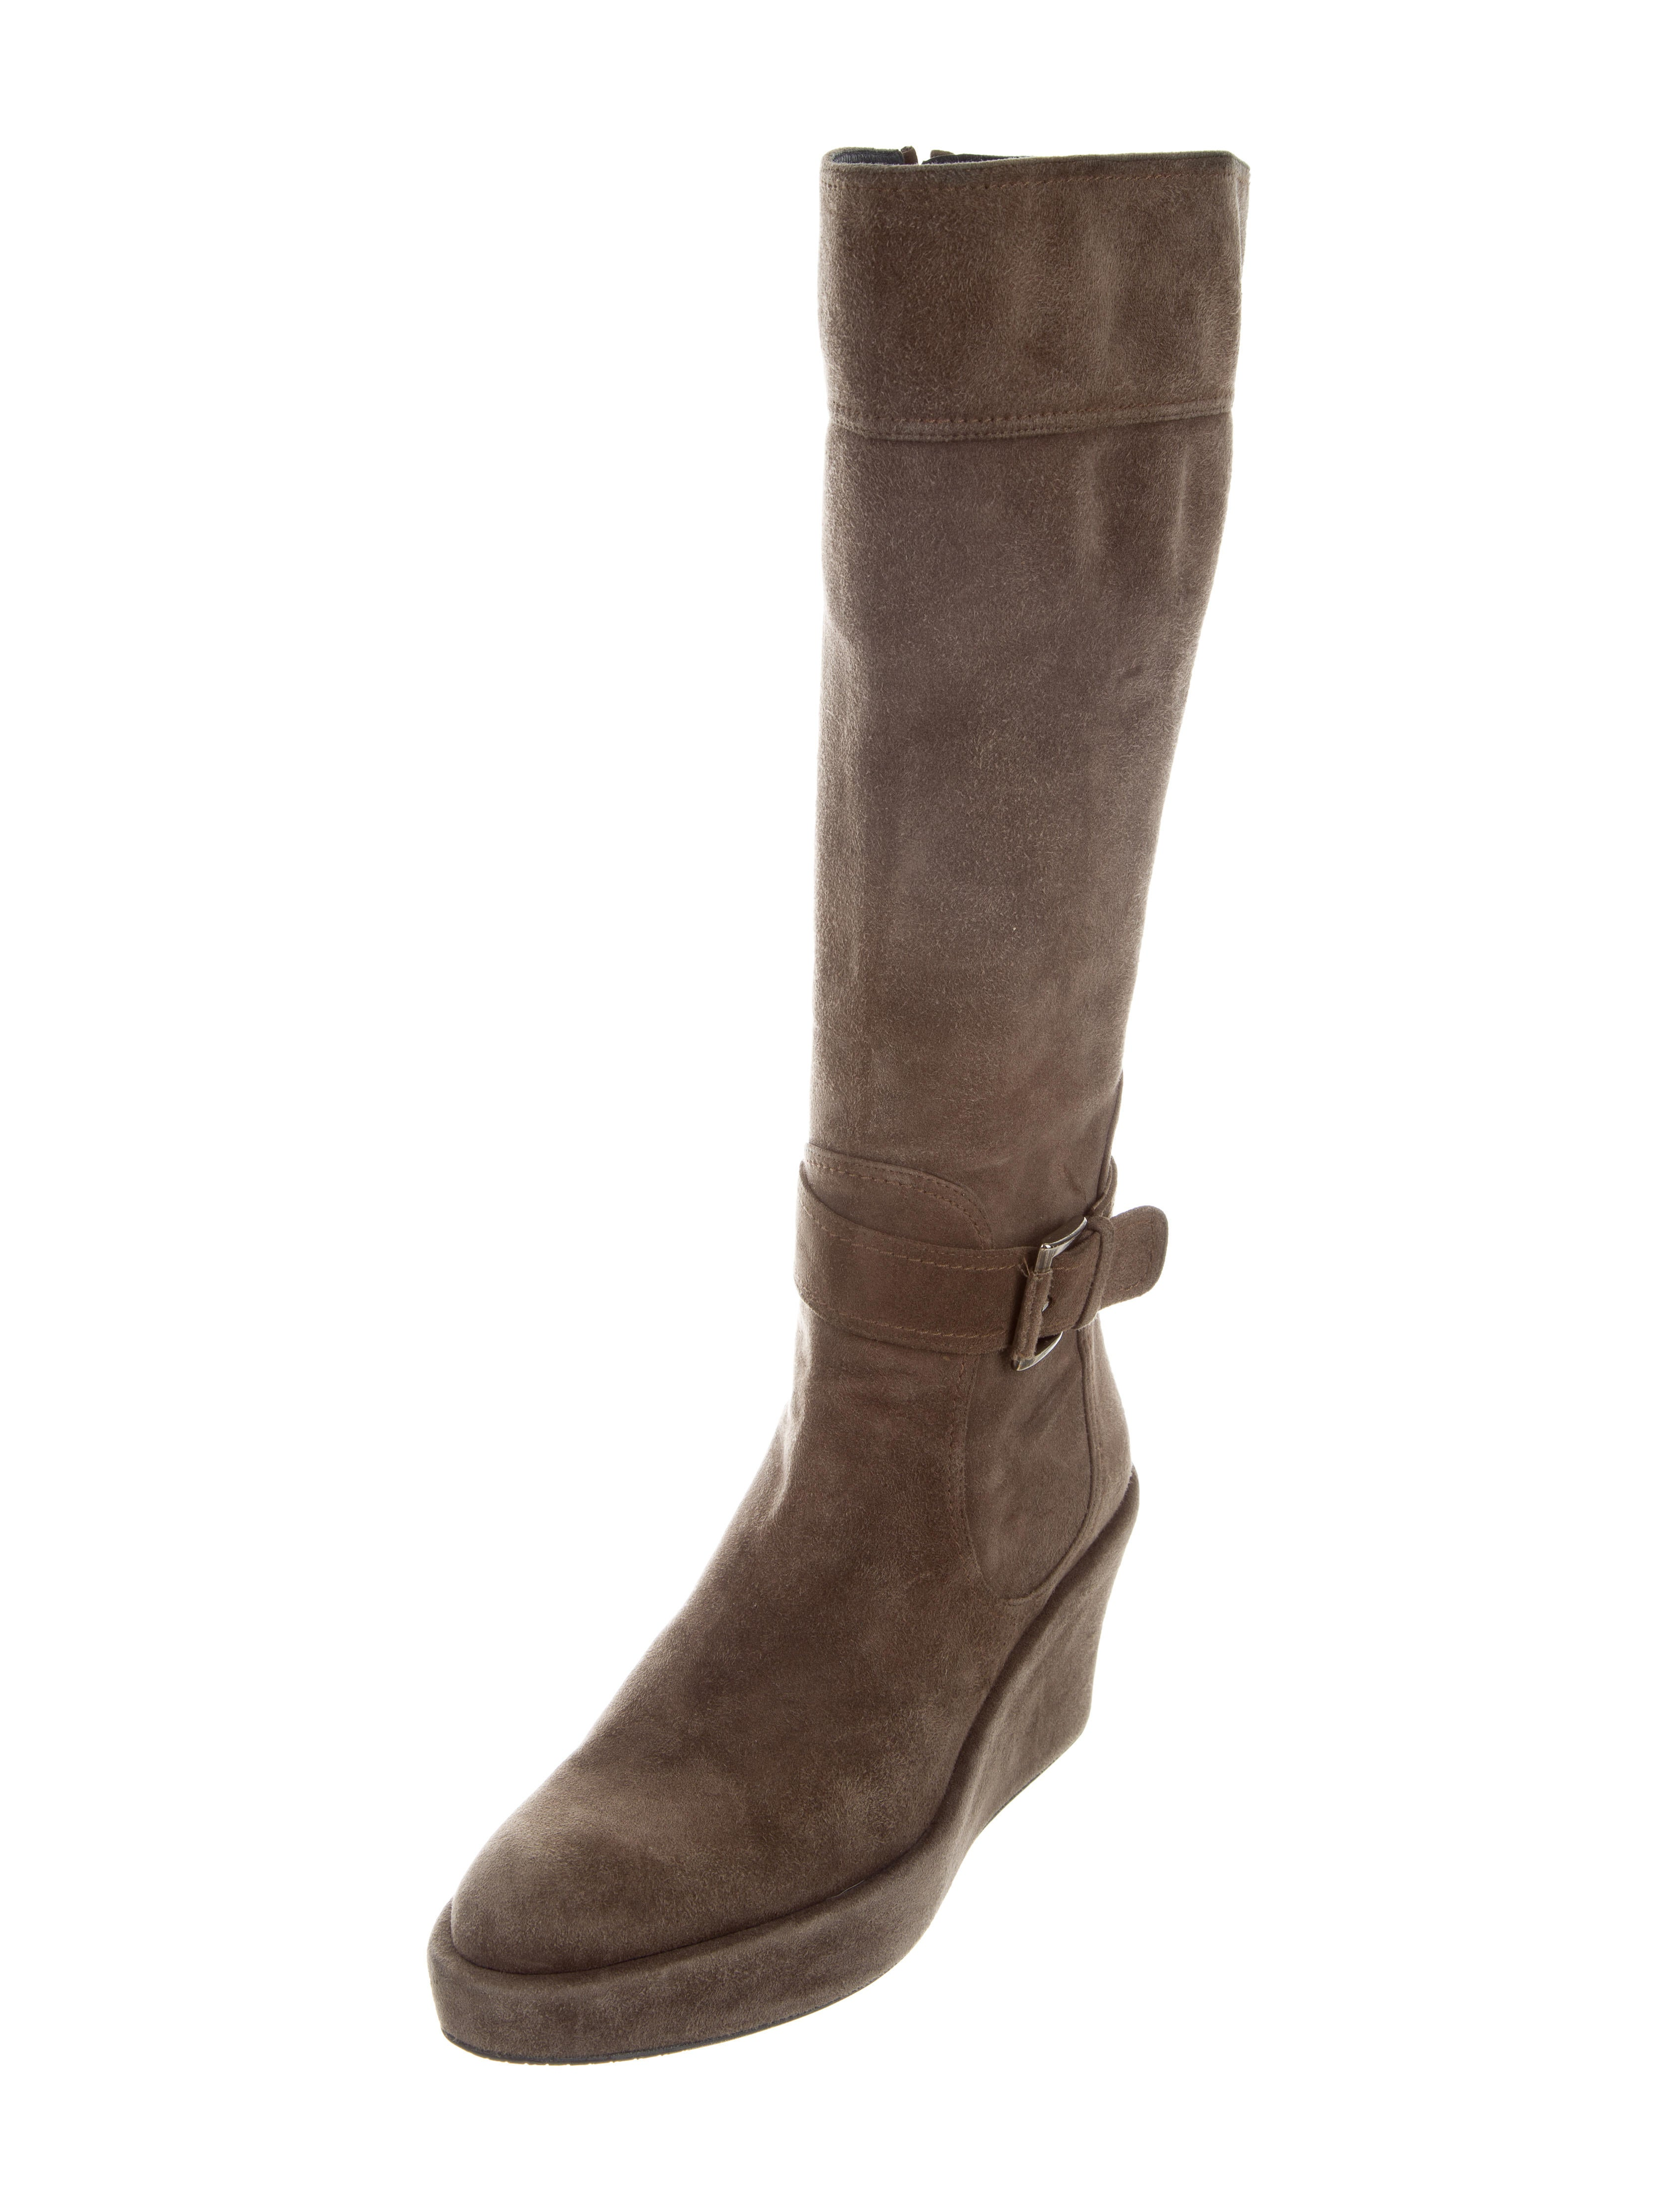 stuart weitzman suede knee high wedge boots shoes